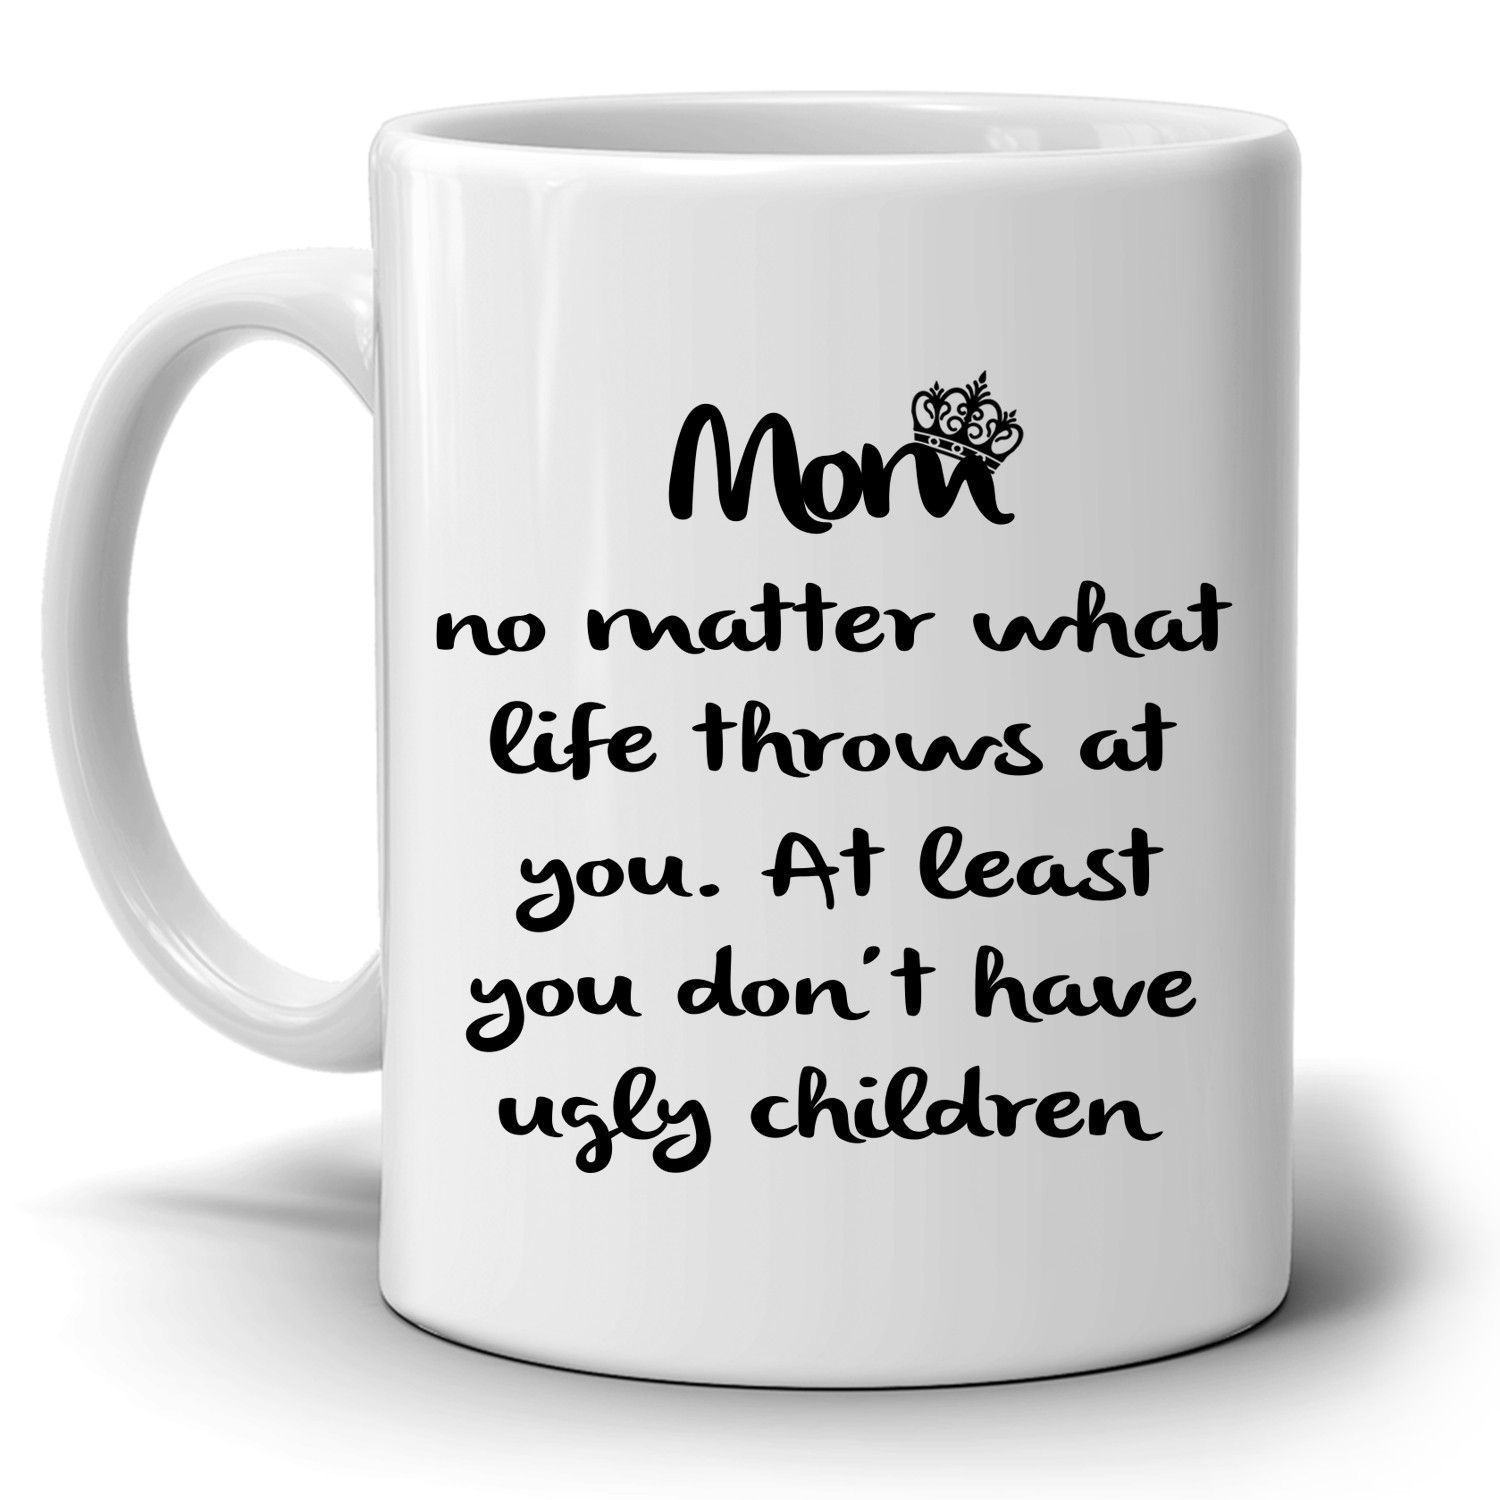 Funny Gifts For Mom From Daughter 2021